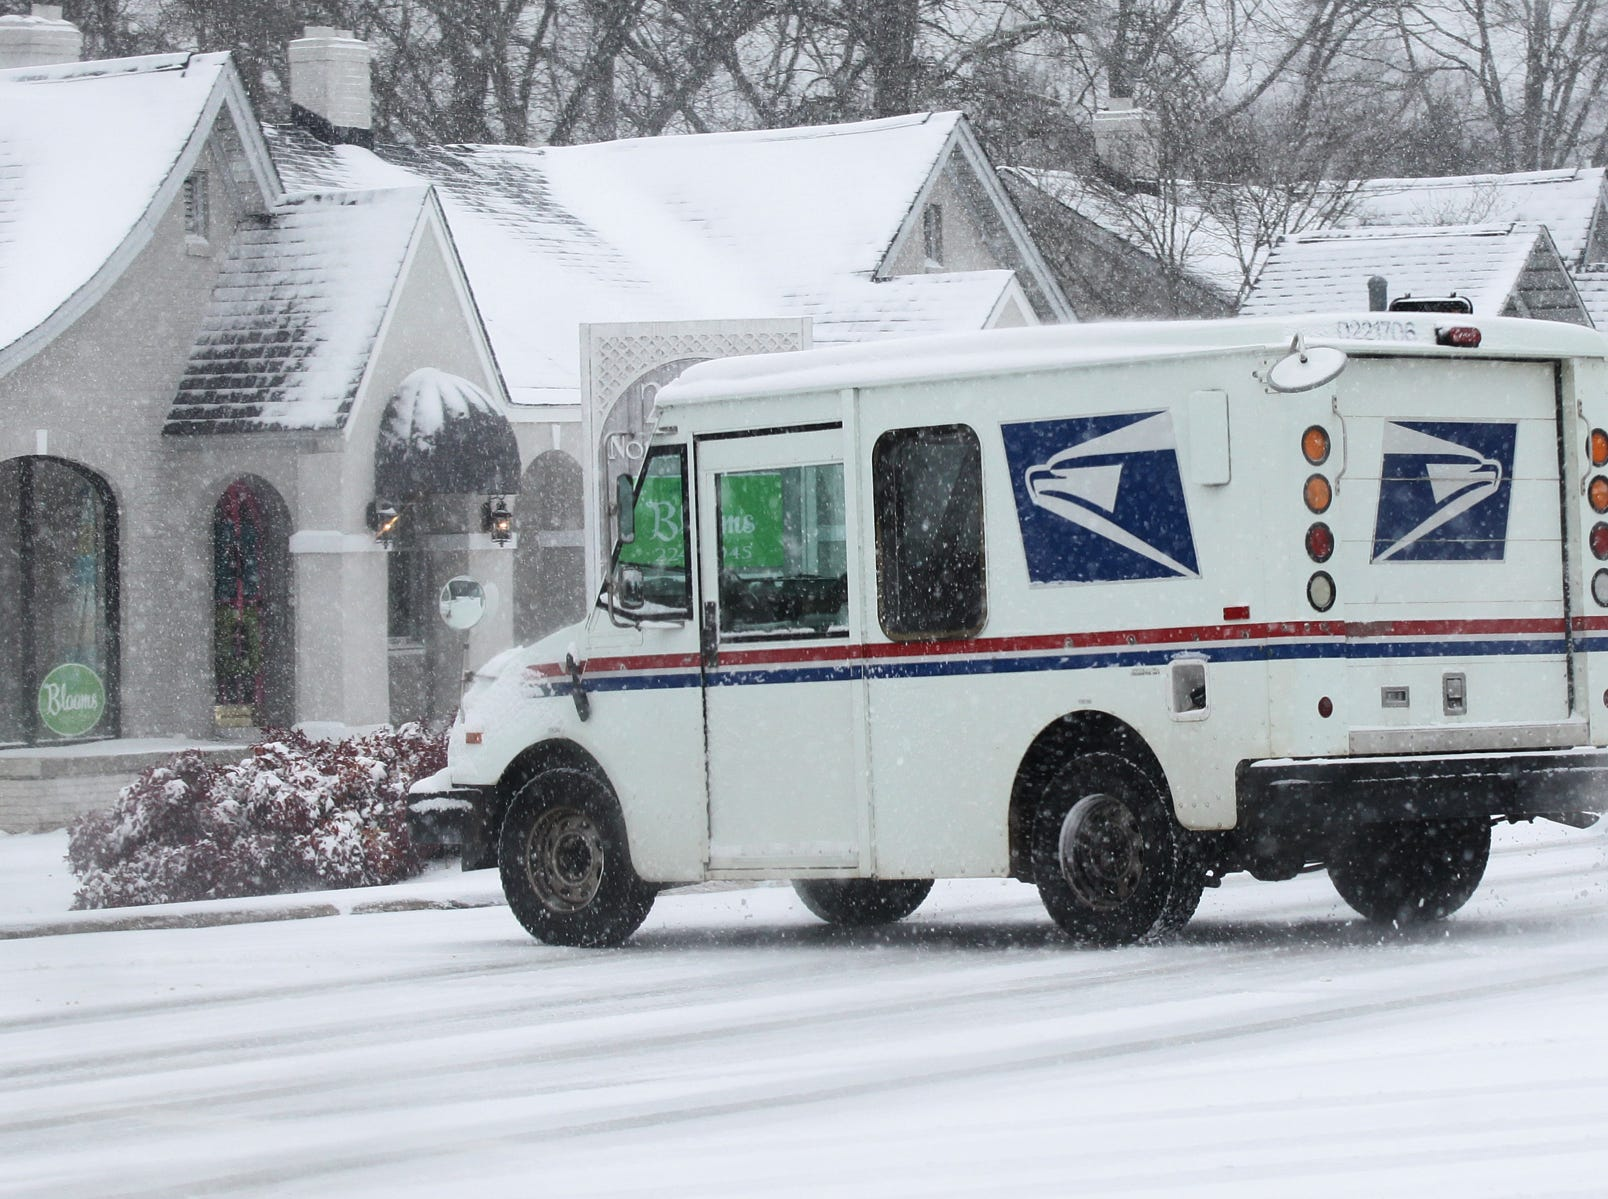 A United States Postal Service vehicle turns into a business to deliver mail in Anderson during the first snow of 2014.